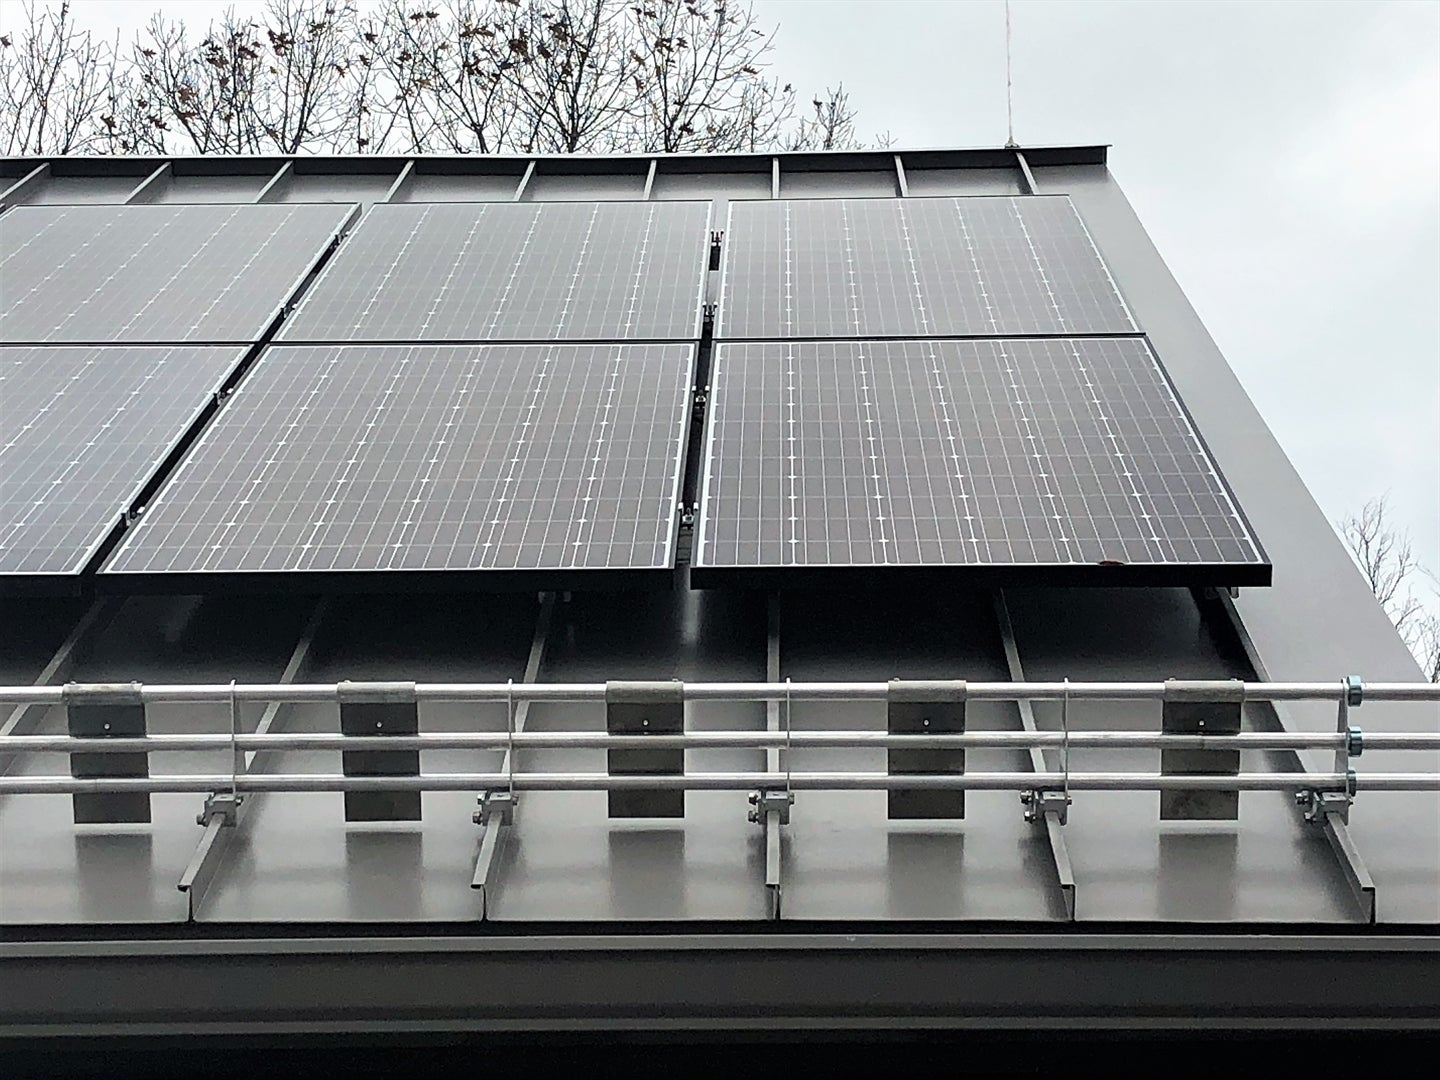 A solar panel snow guard holding back a few feet of snow on a roof